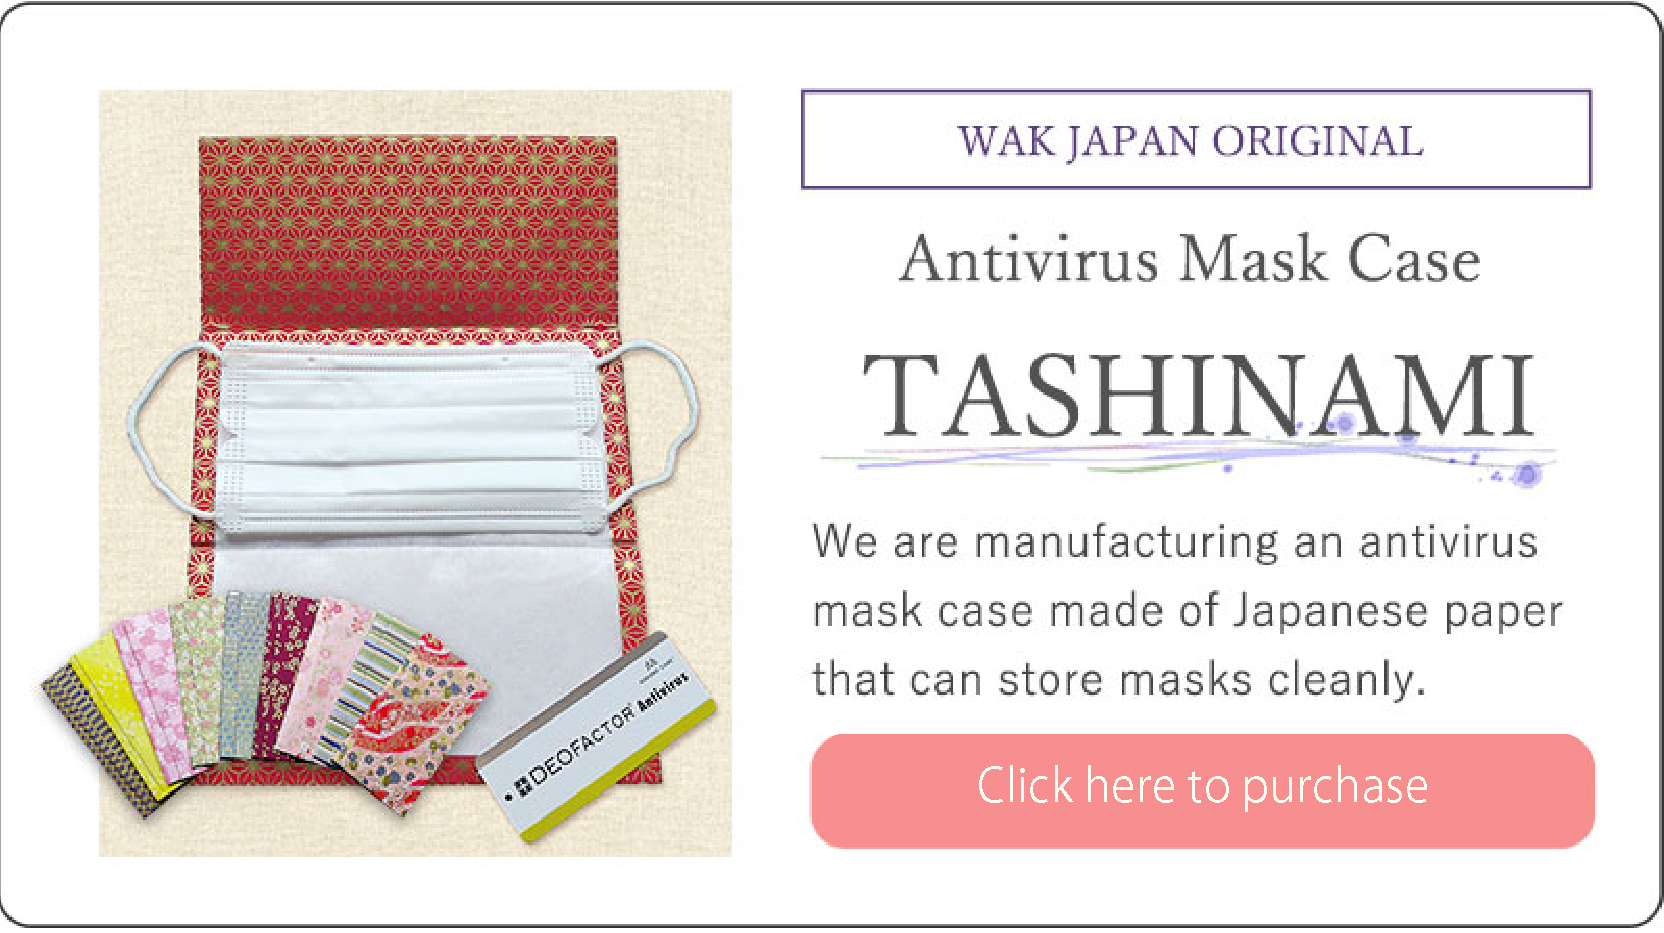 WAK JAPAN ORIGINAL Antivirus Mask Case TASHINAMI